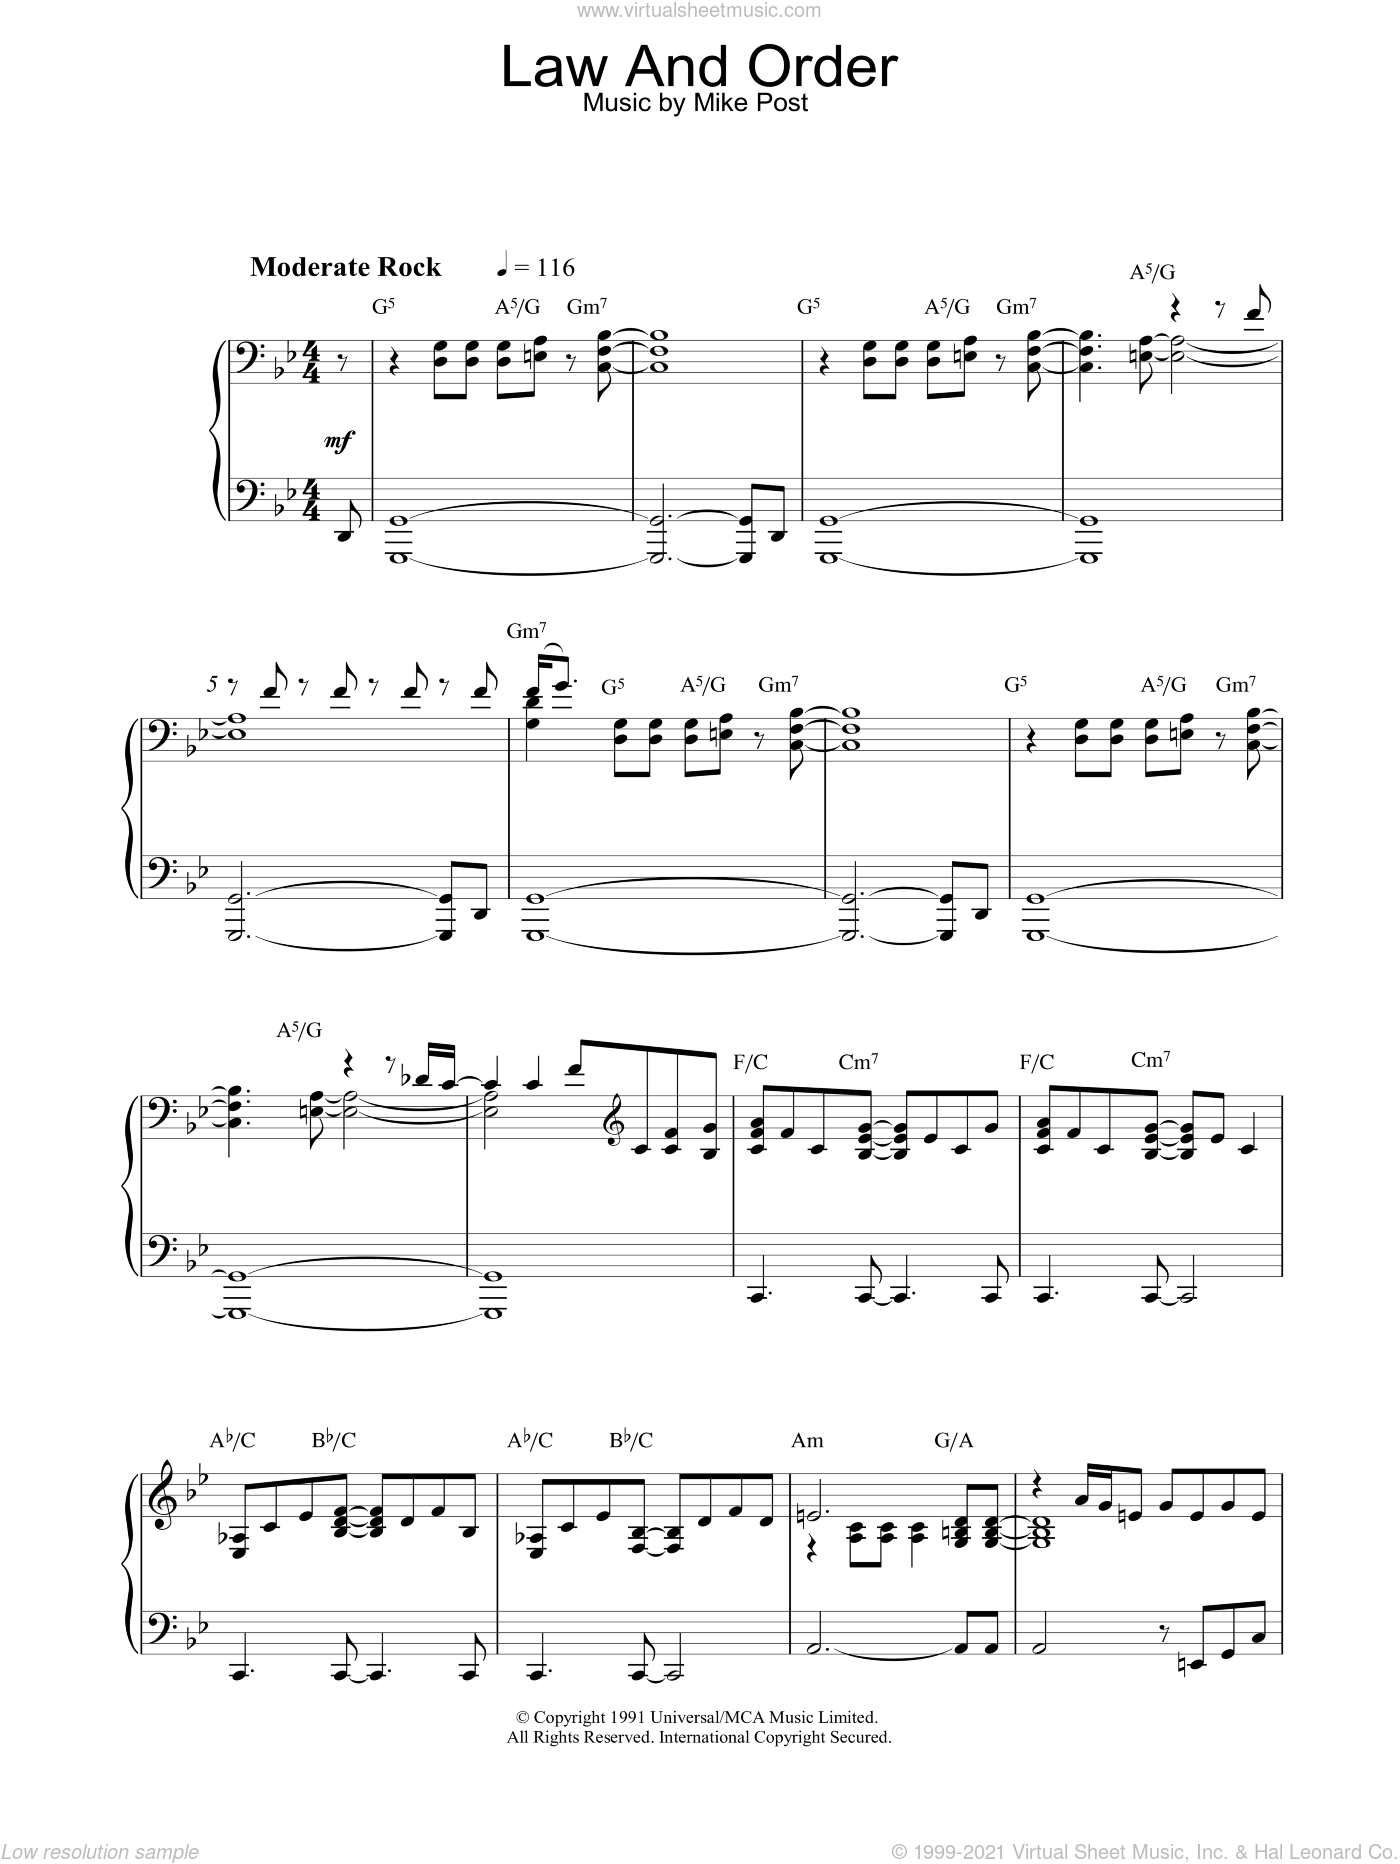 Theme from Law And Order sheet music for piano solo by Mike Post, intermediate skill level